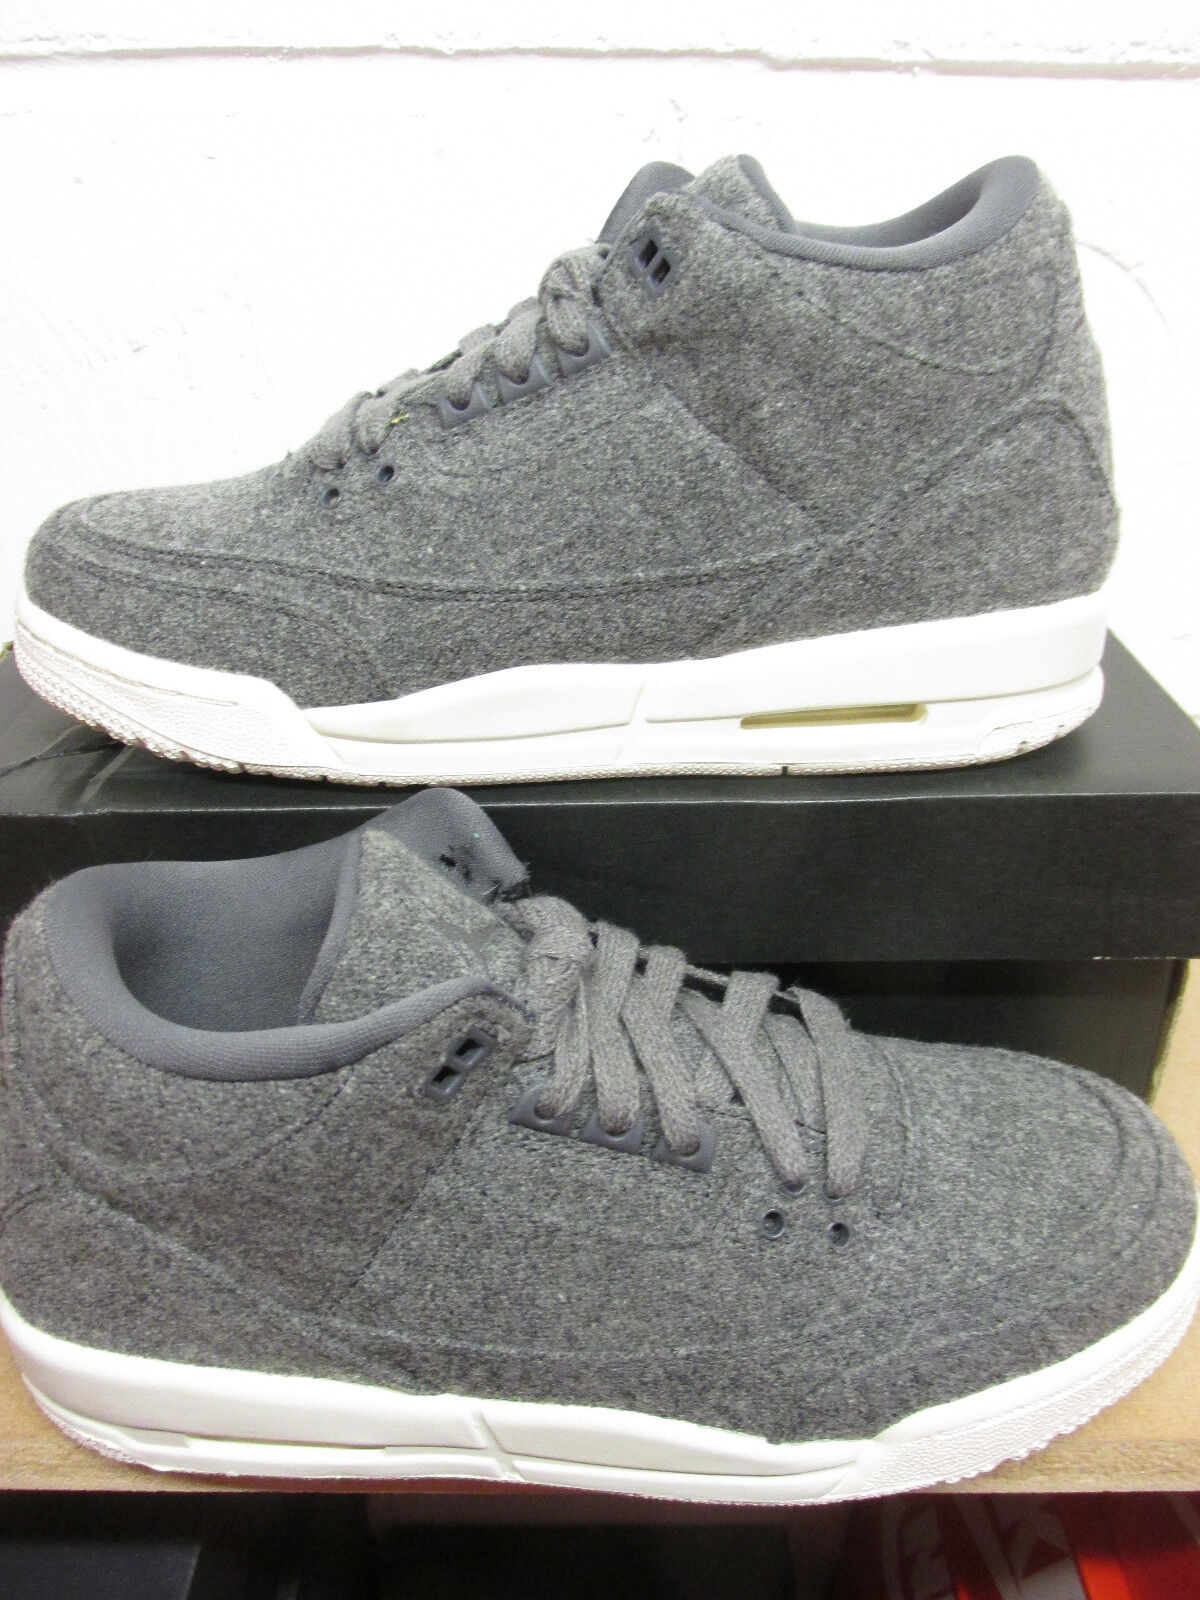 Nike Air Jordan 3 Retro Wool BG Hi Top Trainers 861427 004 Sneakers Shoes Seasonal clearance sale